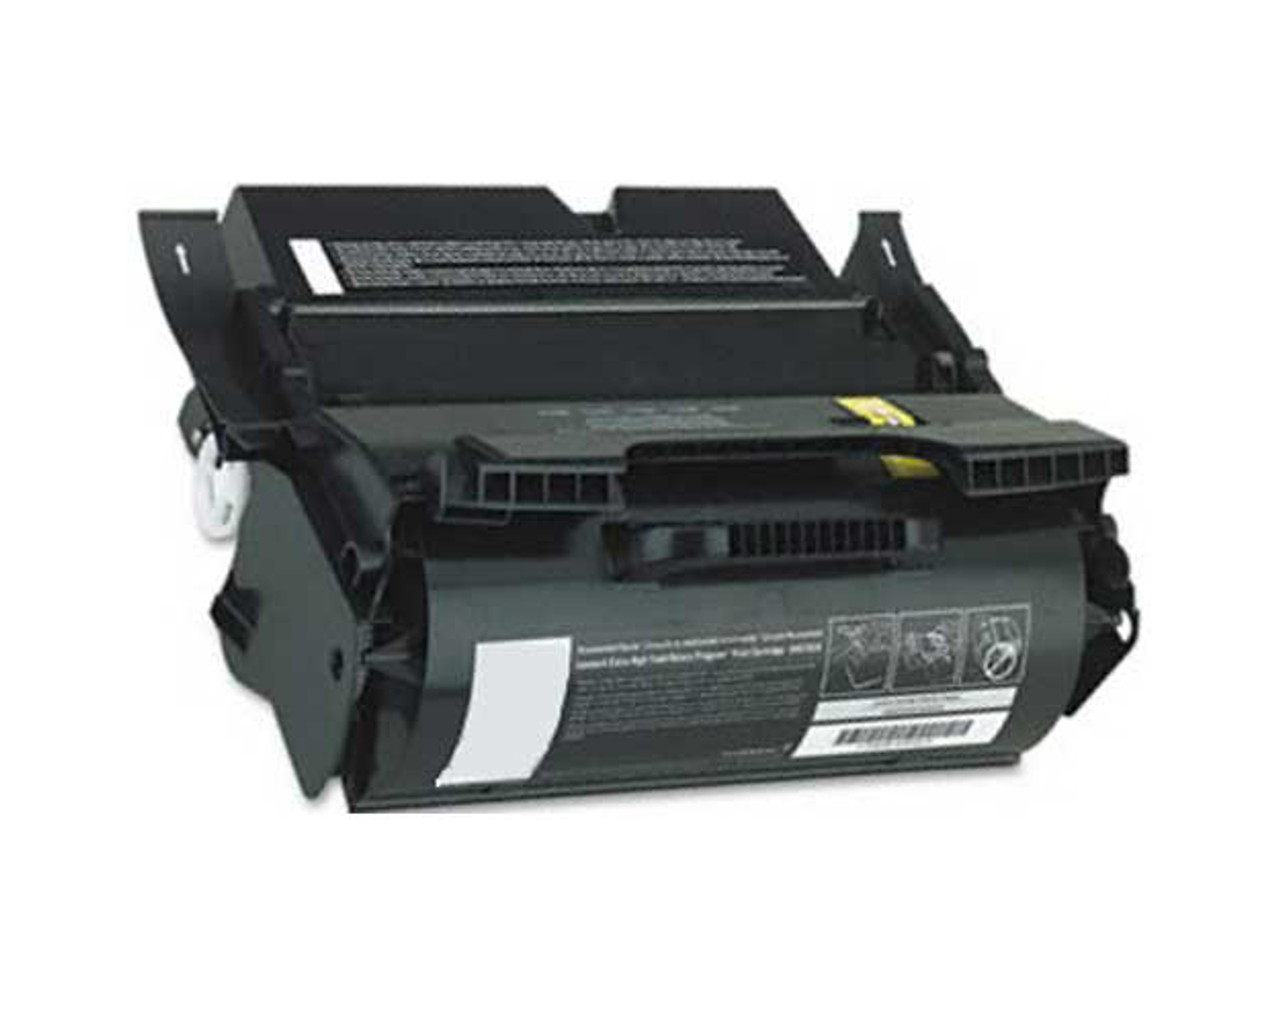 Lexmark MX810/MX811 High Yield Toner Cartridge - New compatible